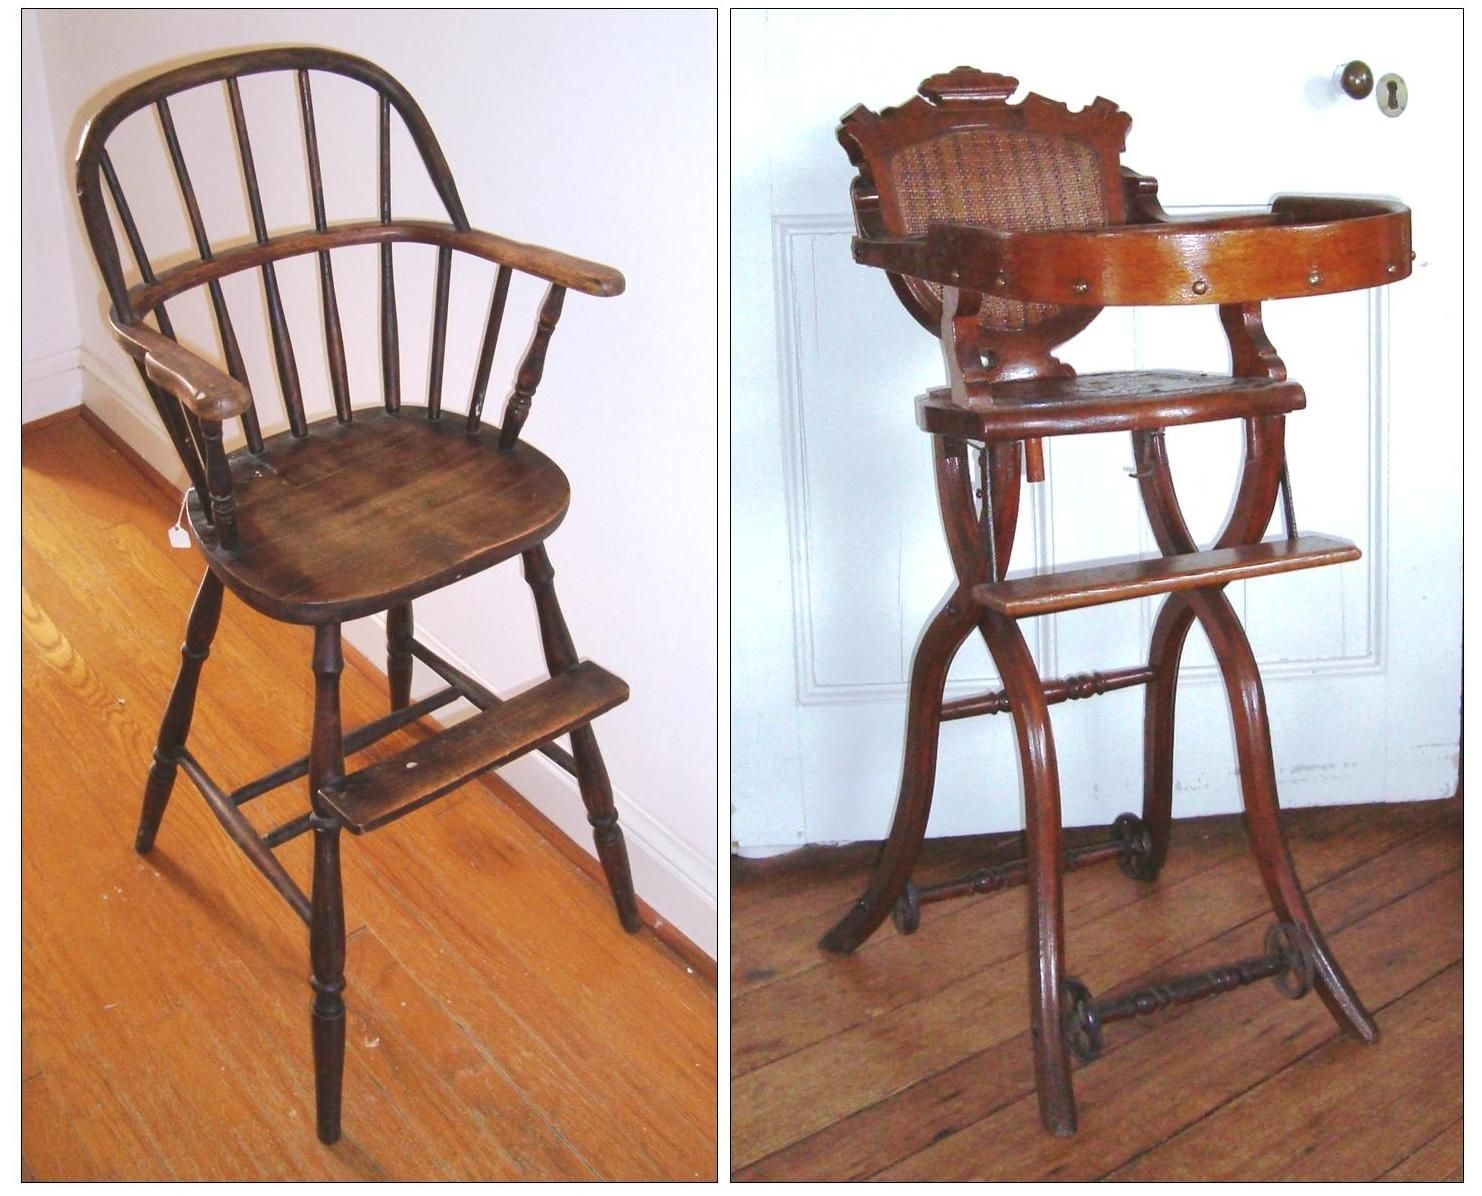 Antique high chair trays antique high chairs wooden